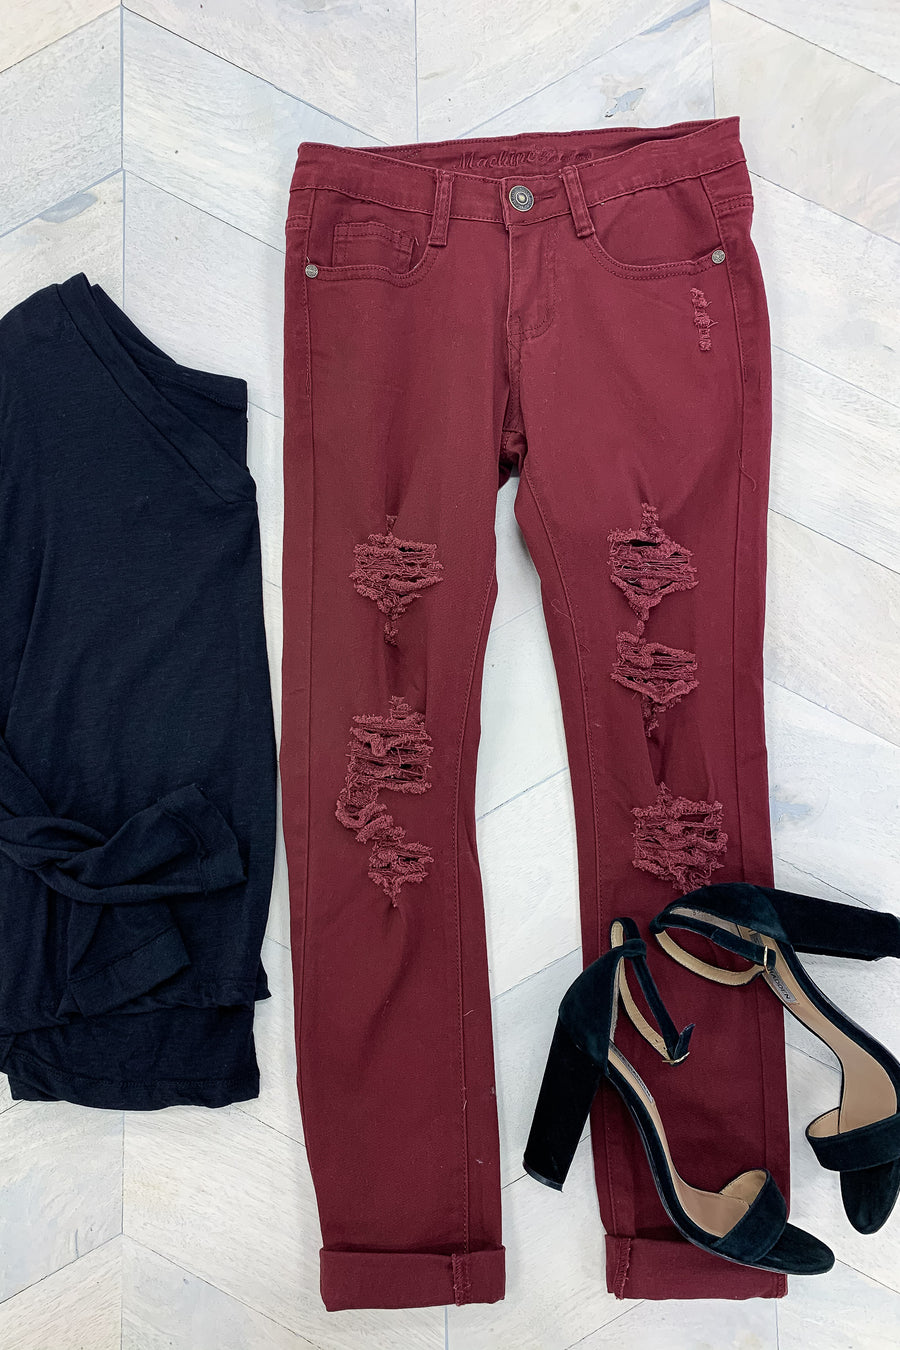 MACHINE Skylar Distressed Skinny Jeans - Burgundy - Closet Candy Boutique